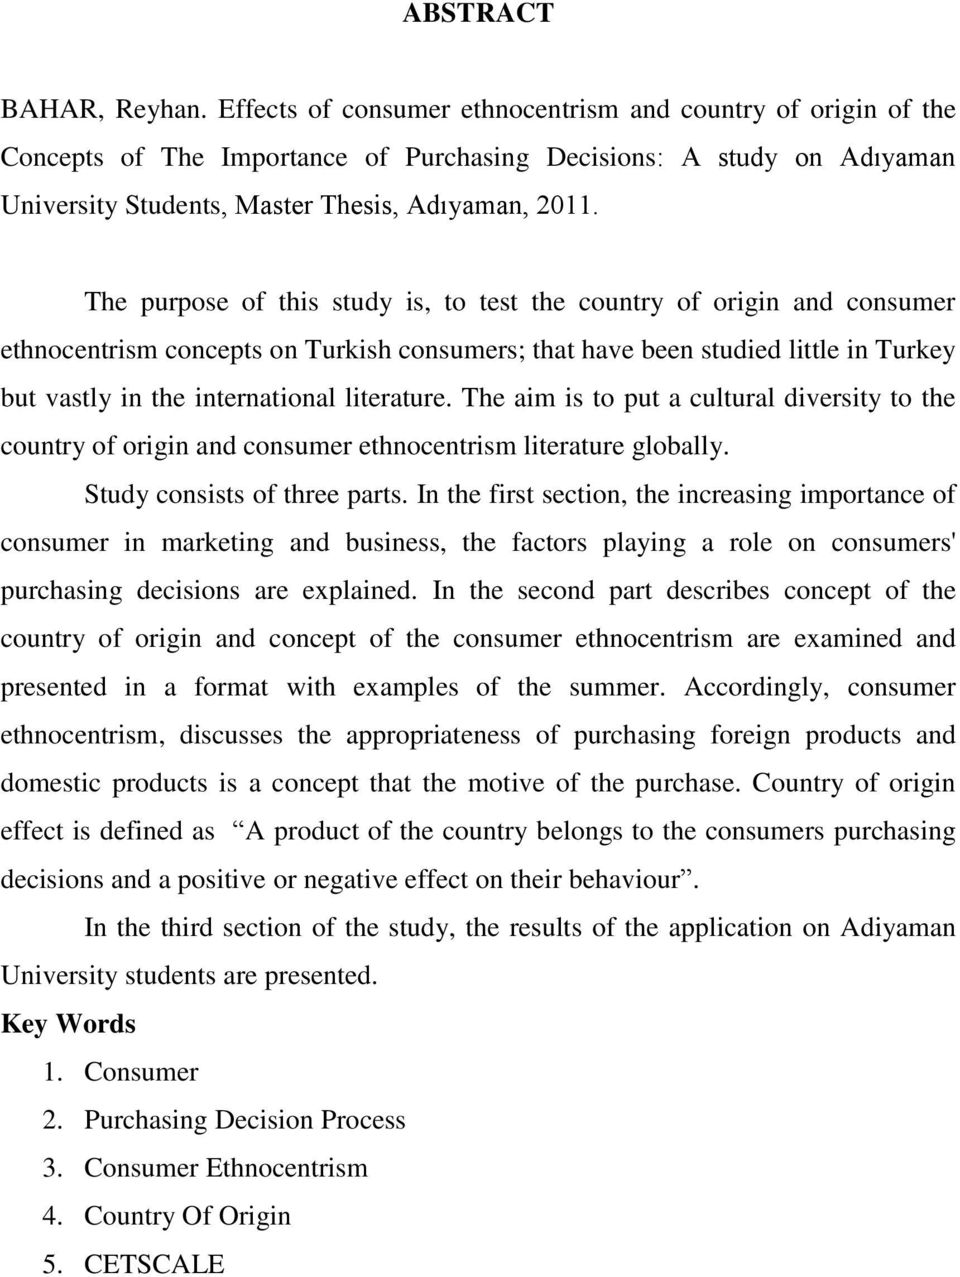 The purpose of this study is, to test the country of origin and consumer ethnocentrism concepts on Turkish consumers; that have been studied little in Turkey but vastly in the international